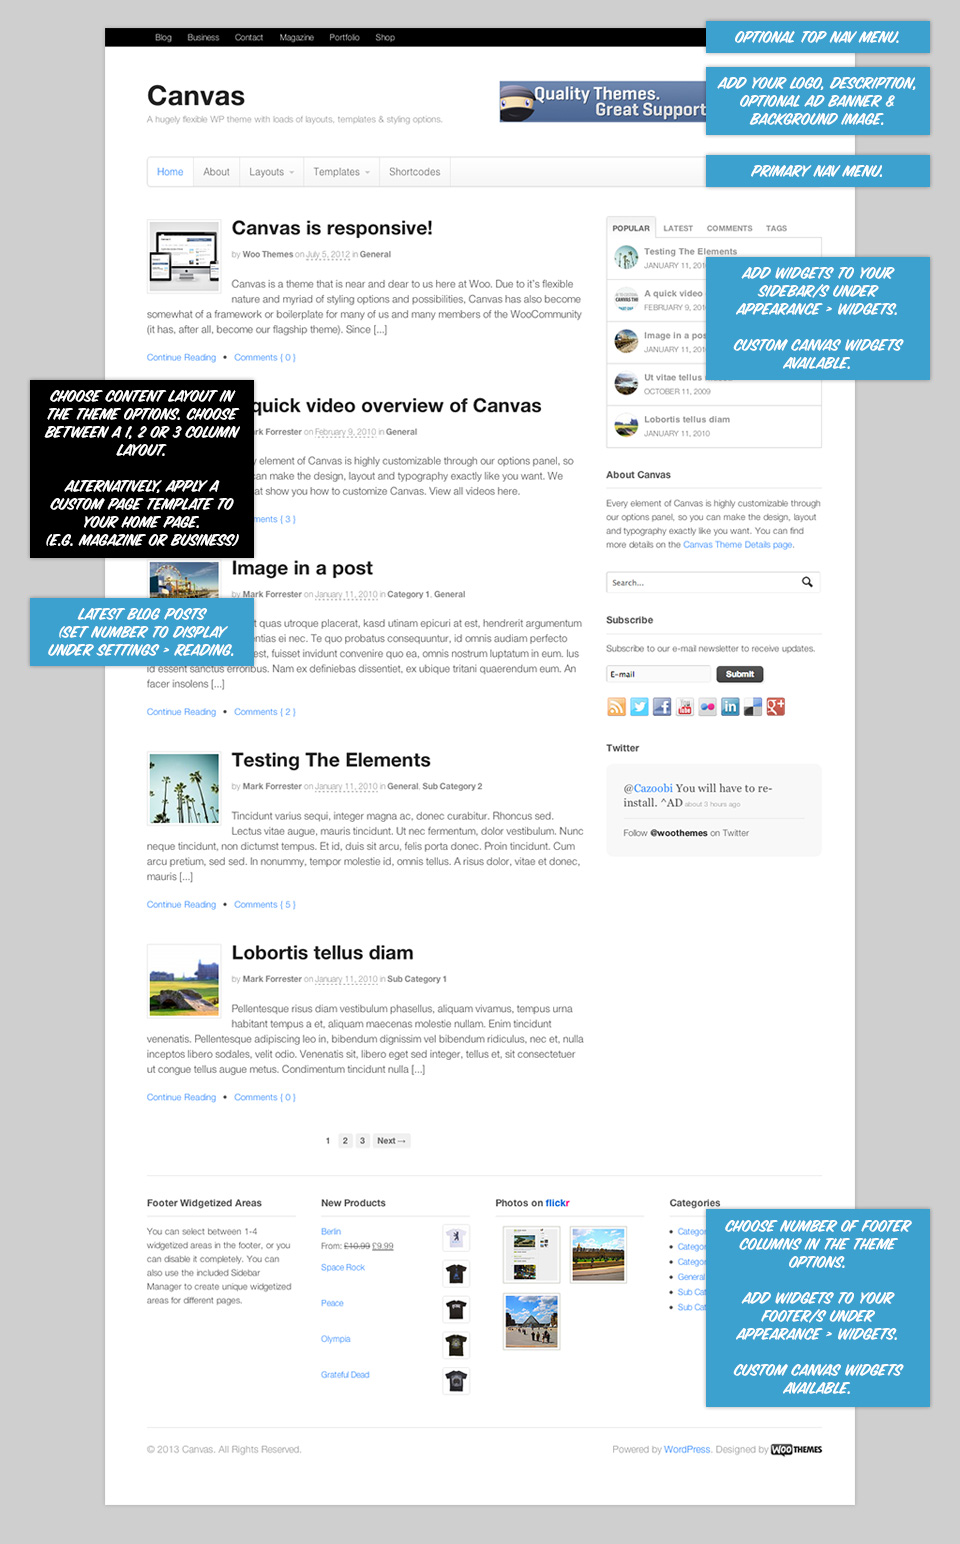 Canvas homepage overview